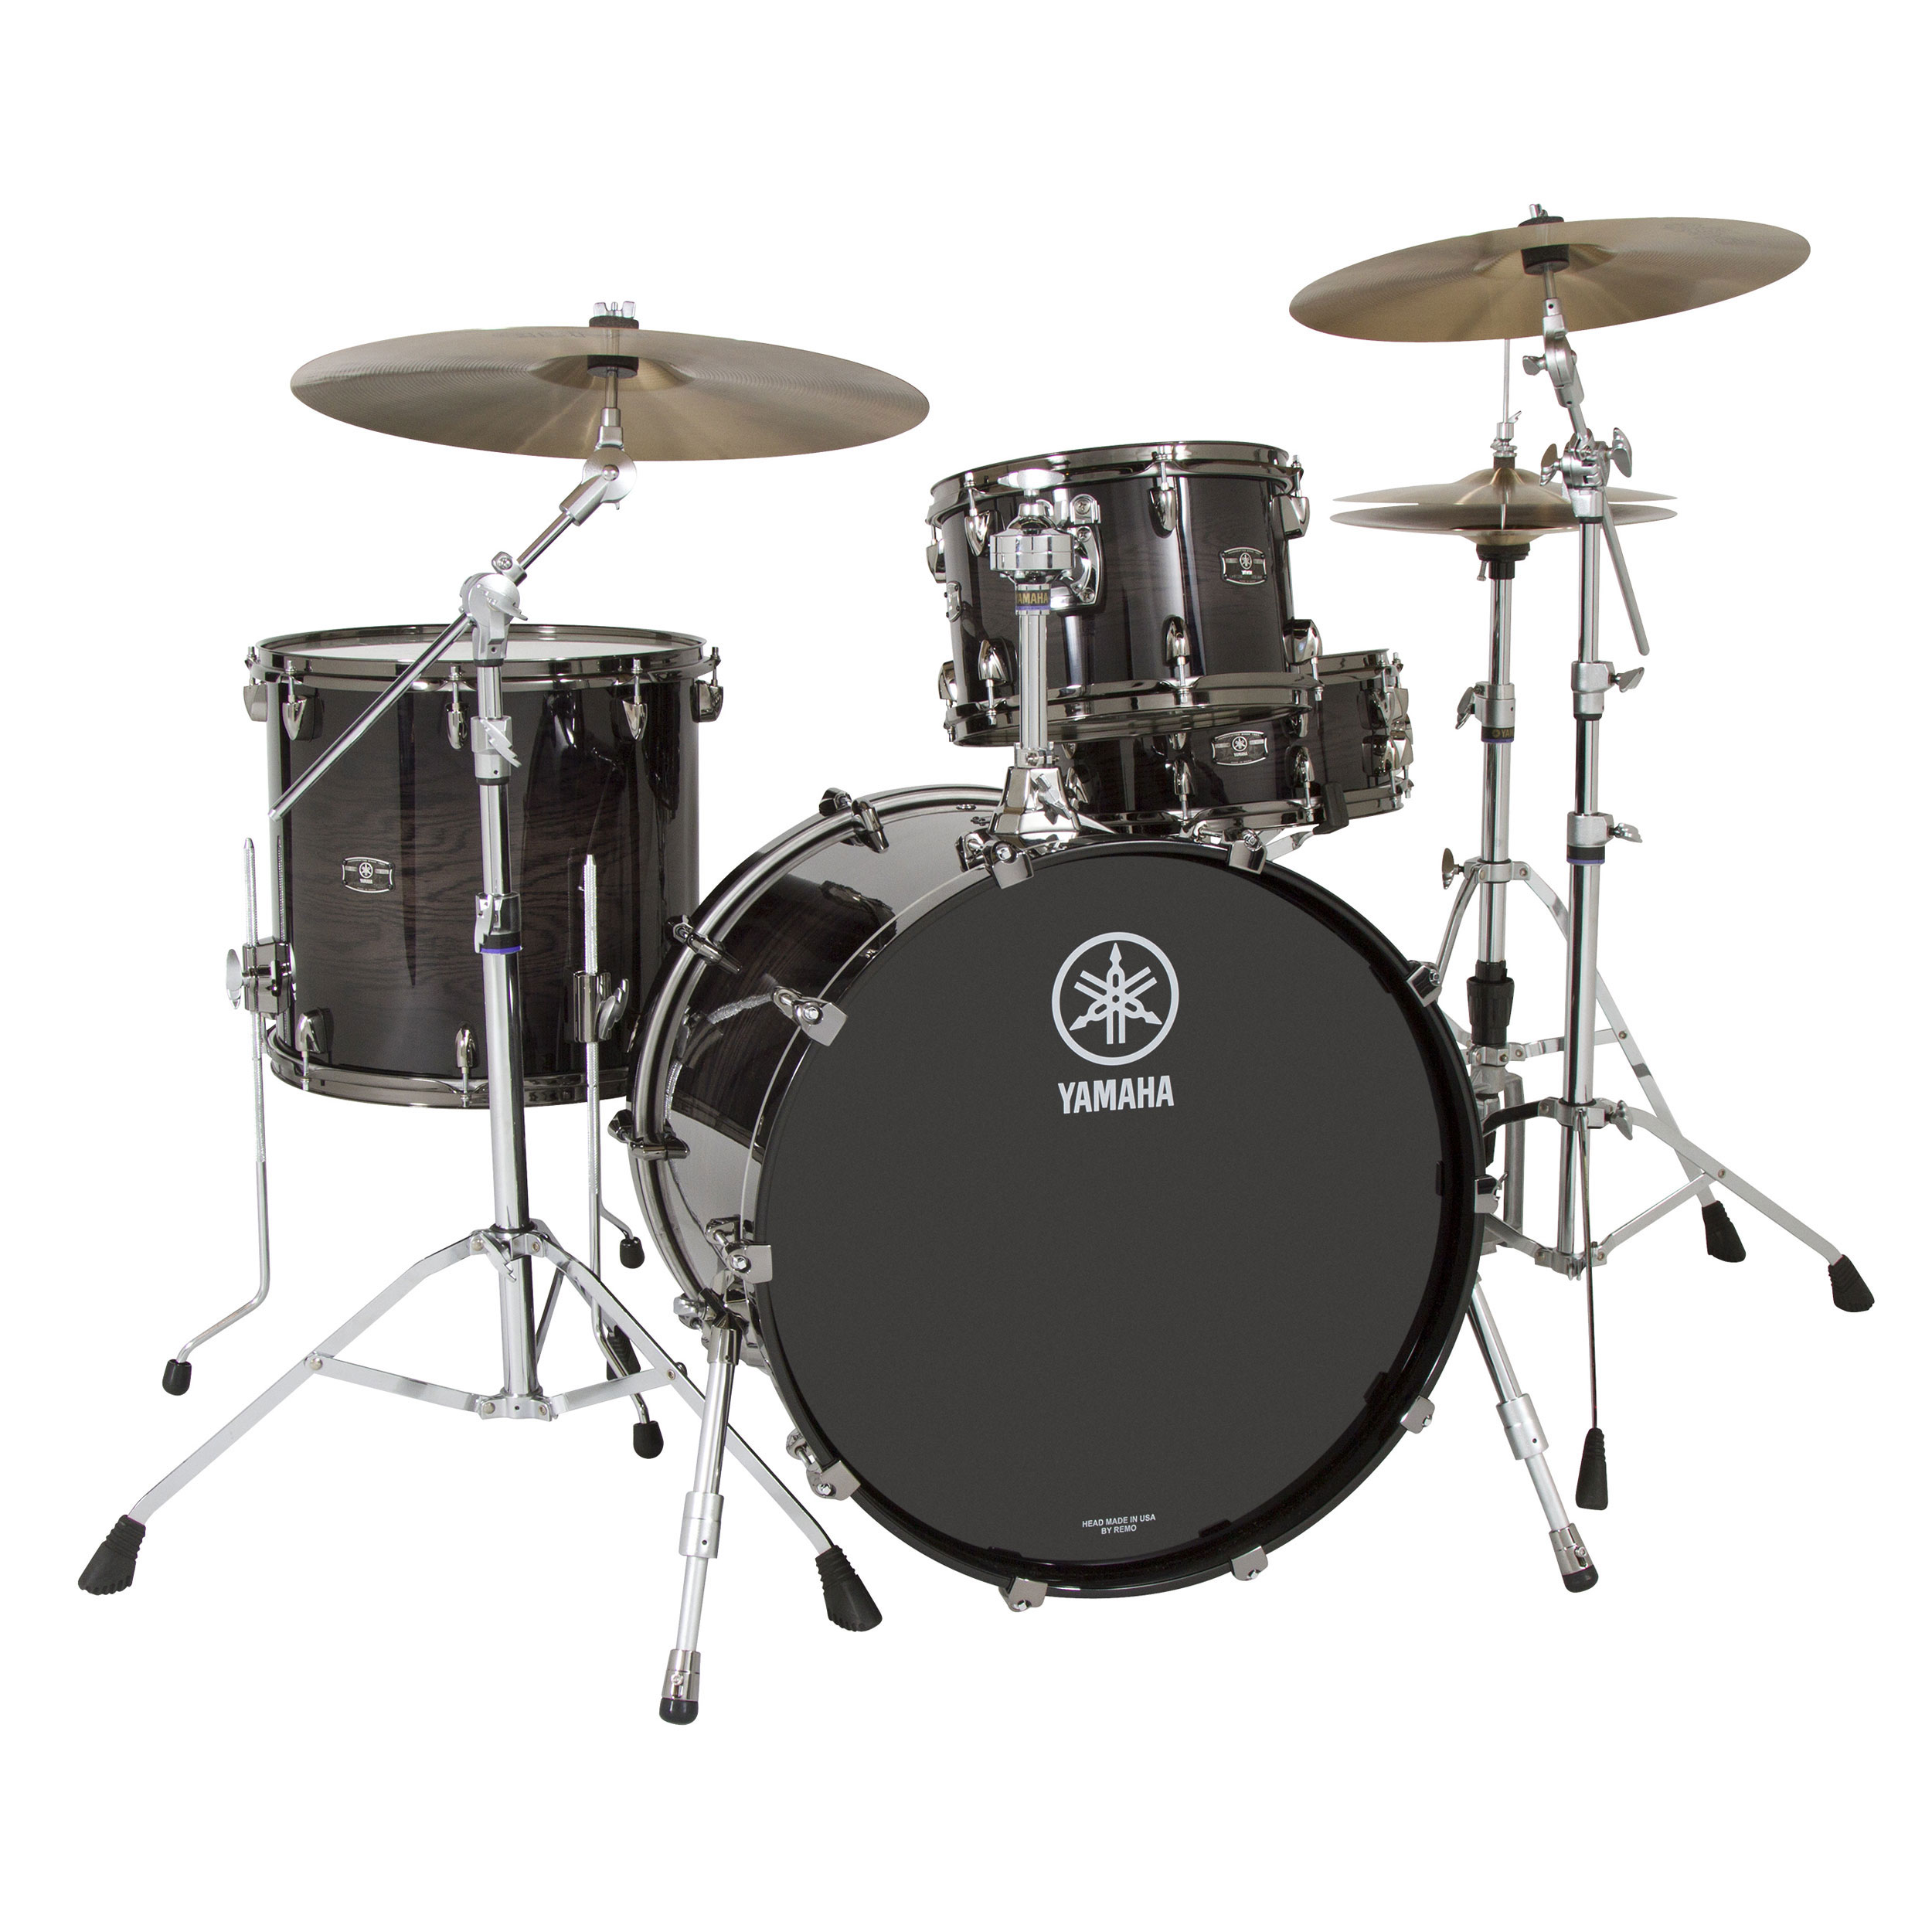 Dating yamaha drums